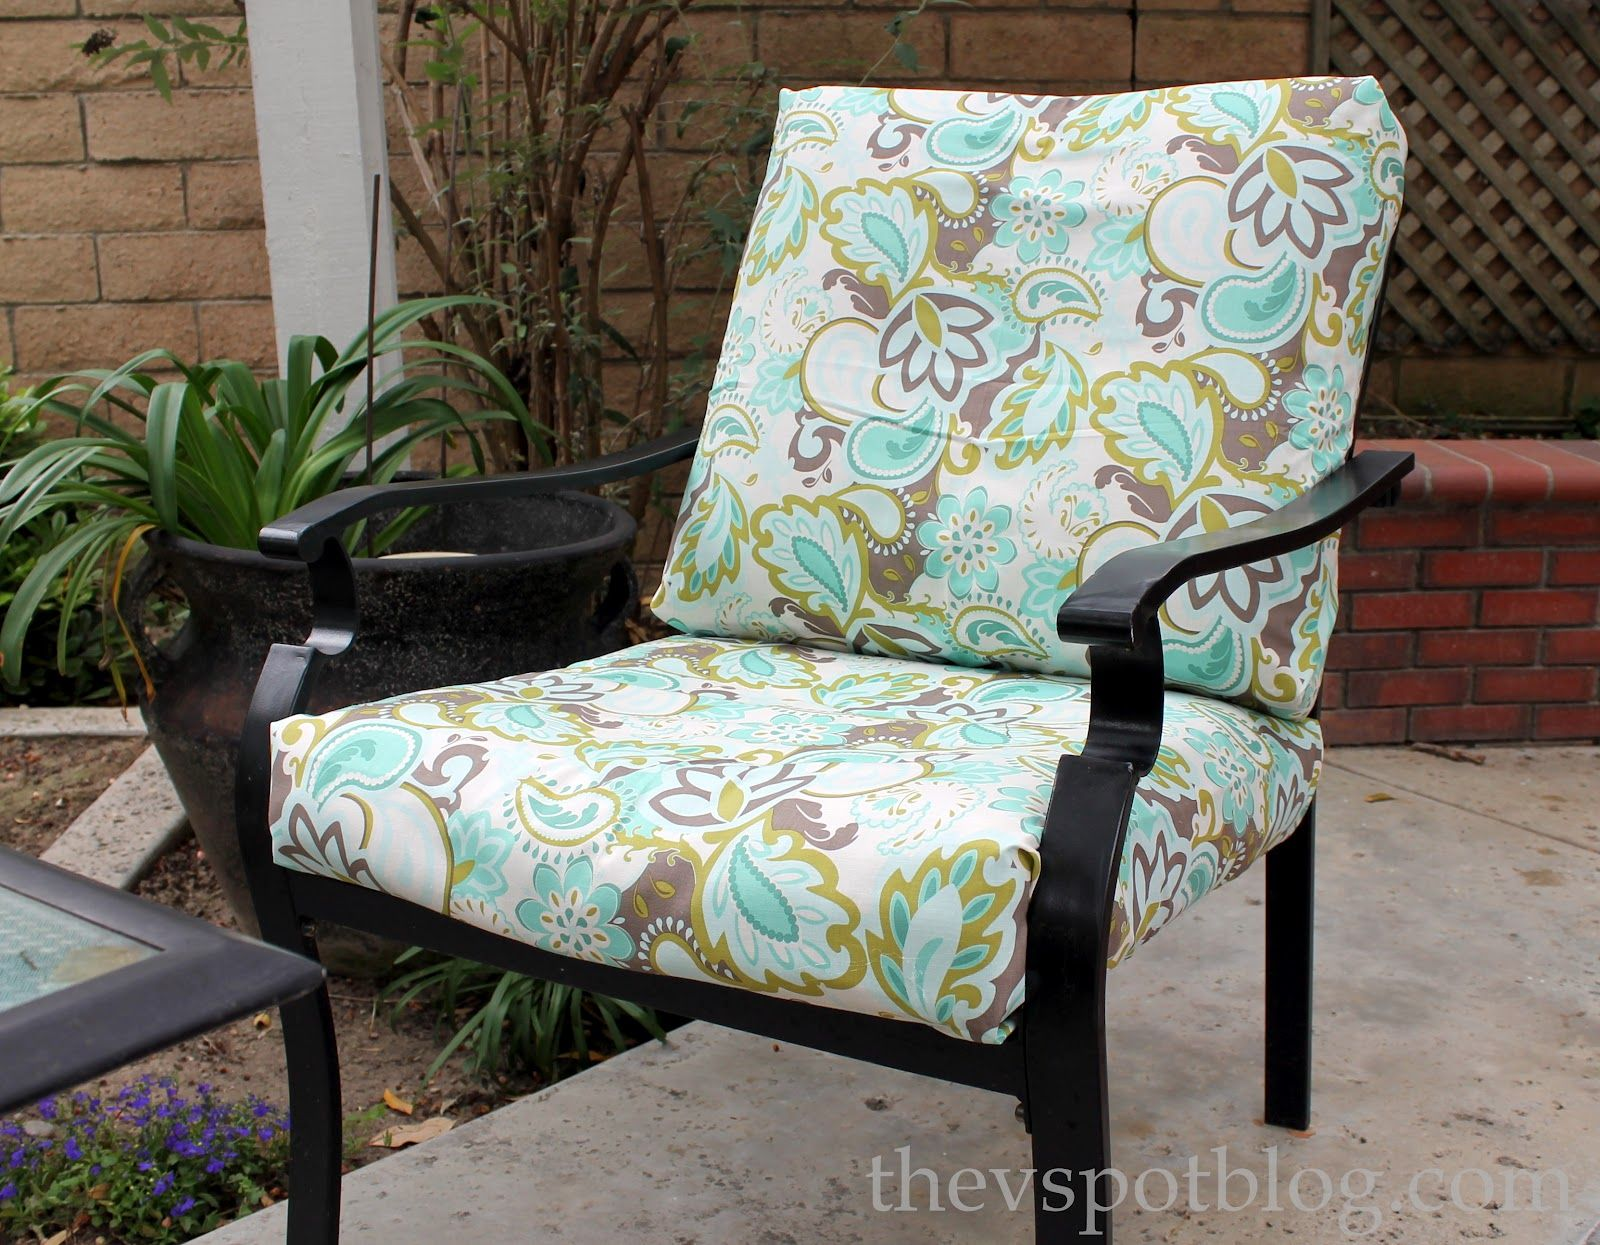 No Sew Project: How To Recover Your Outdoor Cushions Using Fabric And A  Glue Gun.